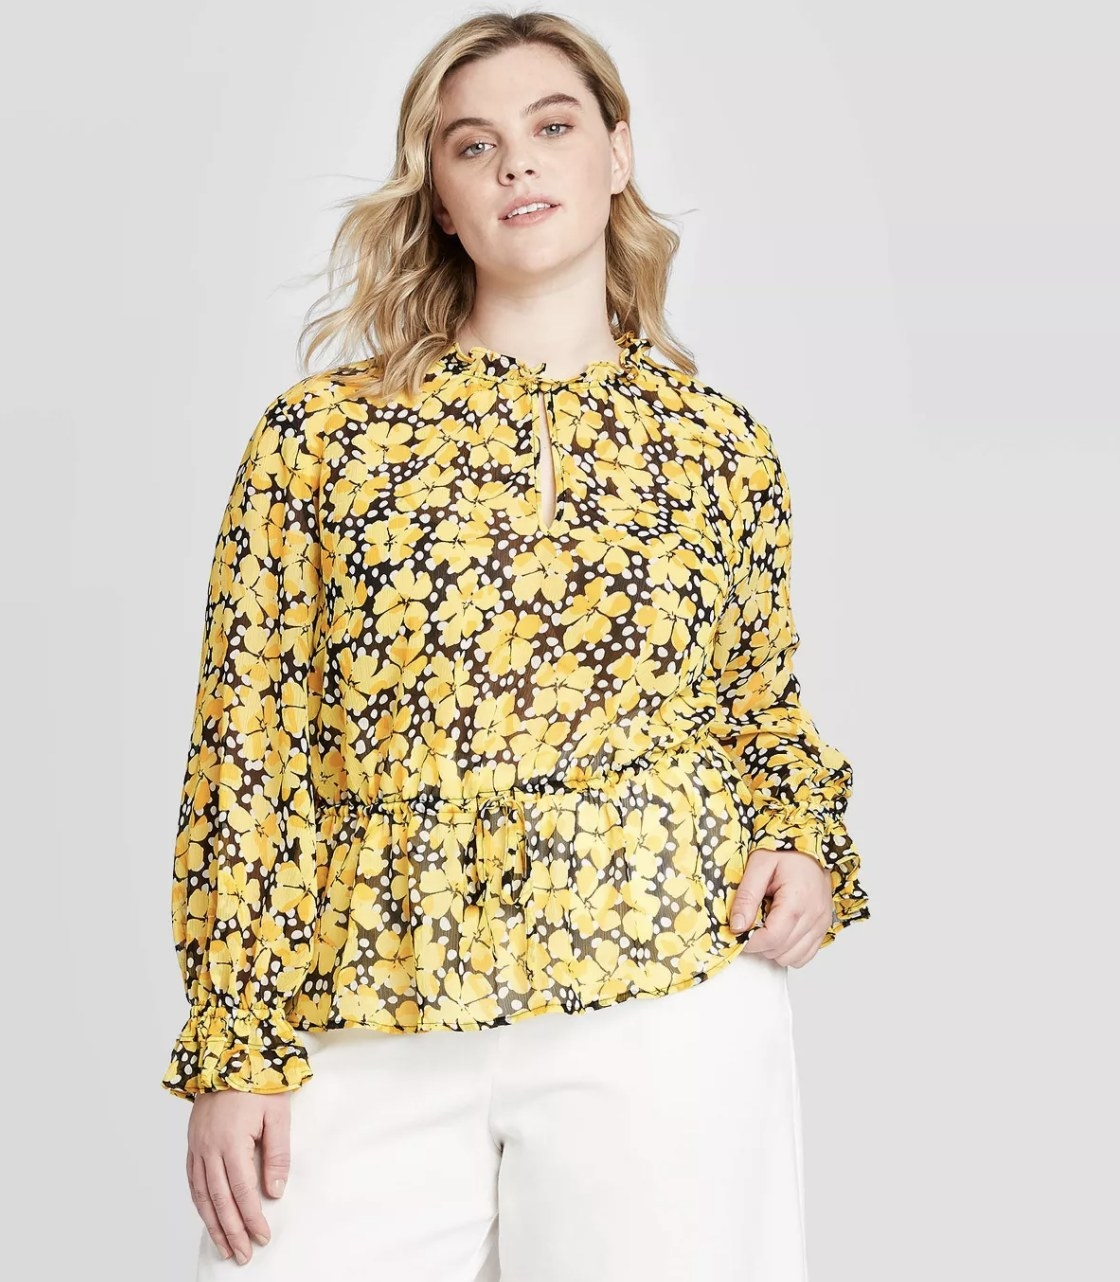 Model wearing the yellow floral blouse